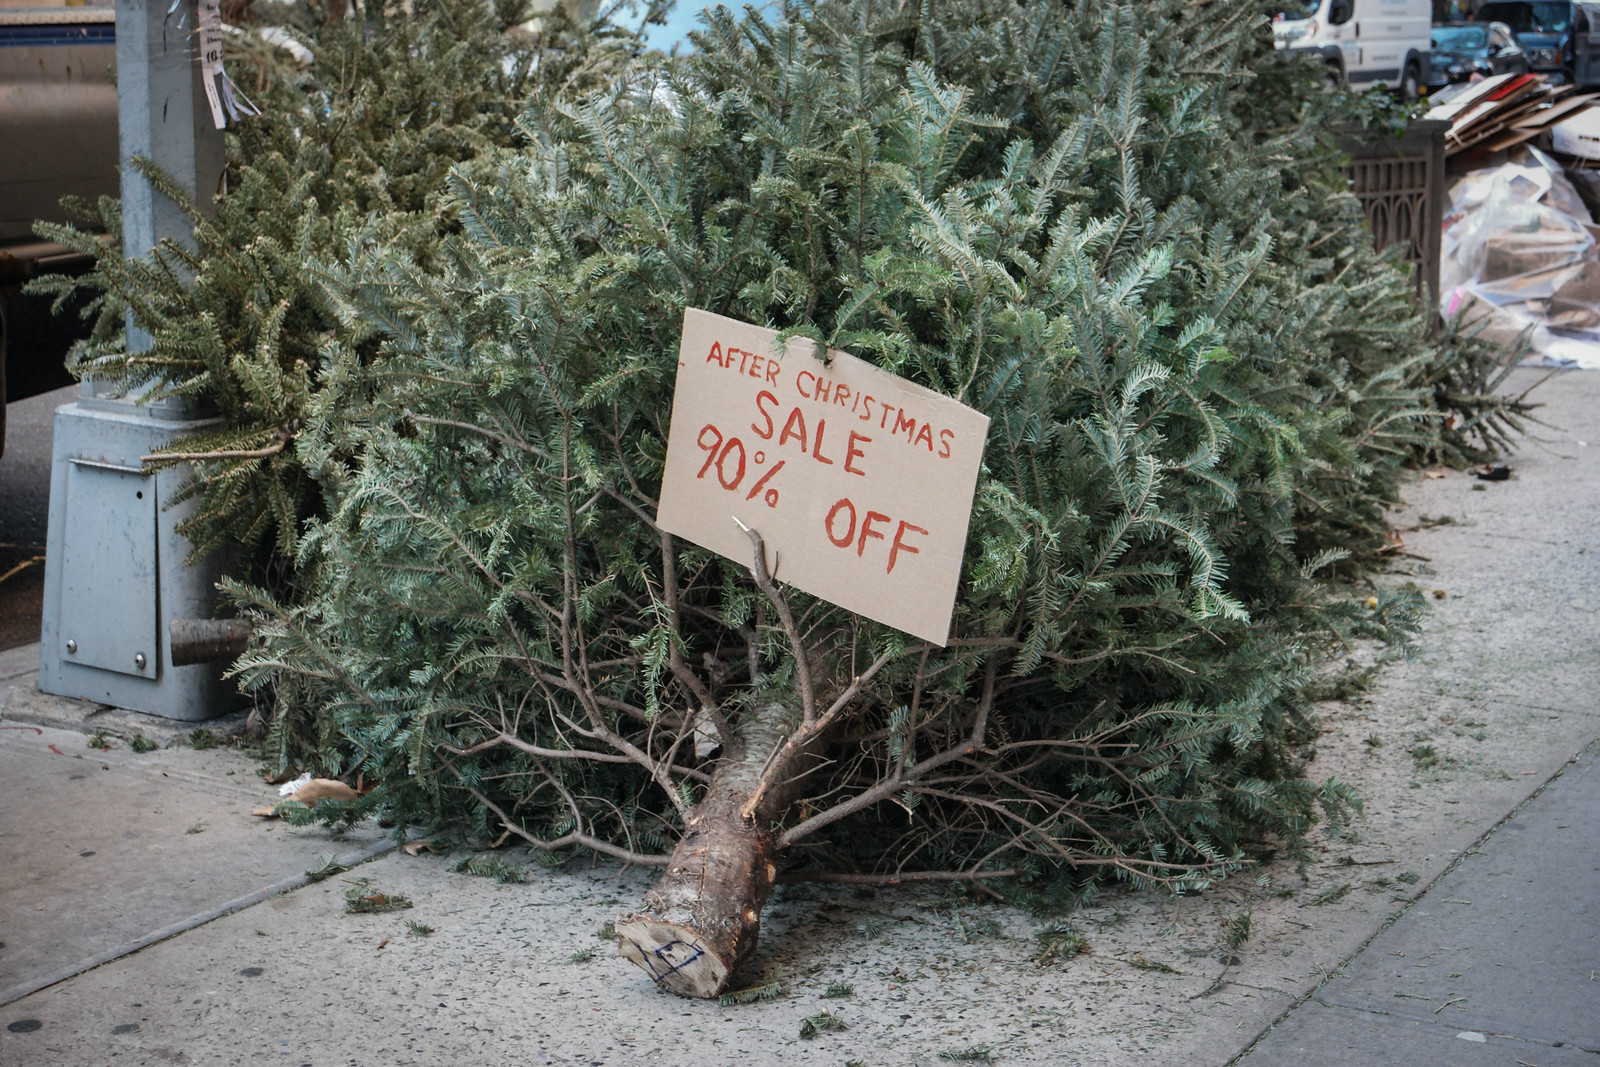 90% Off After Christmas Sale